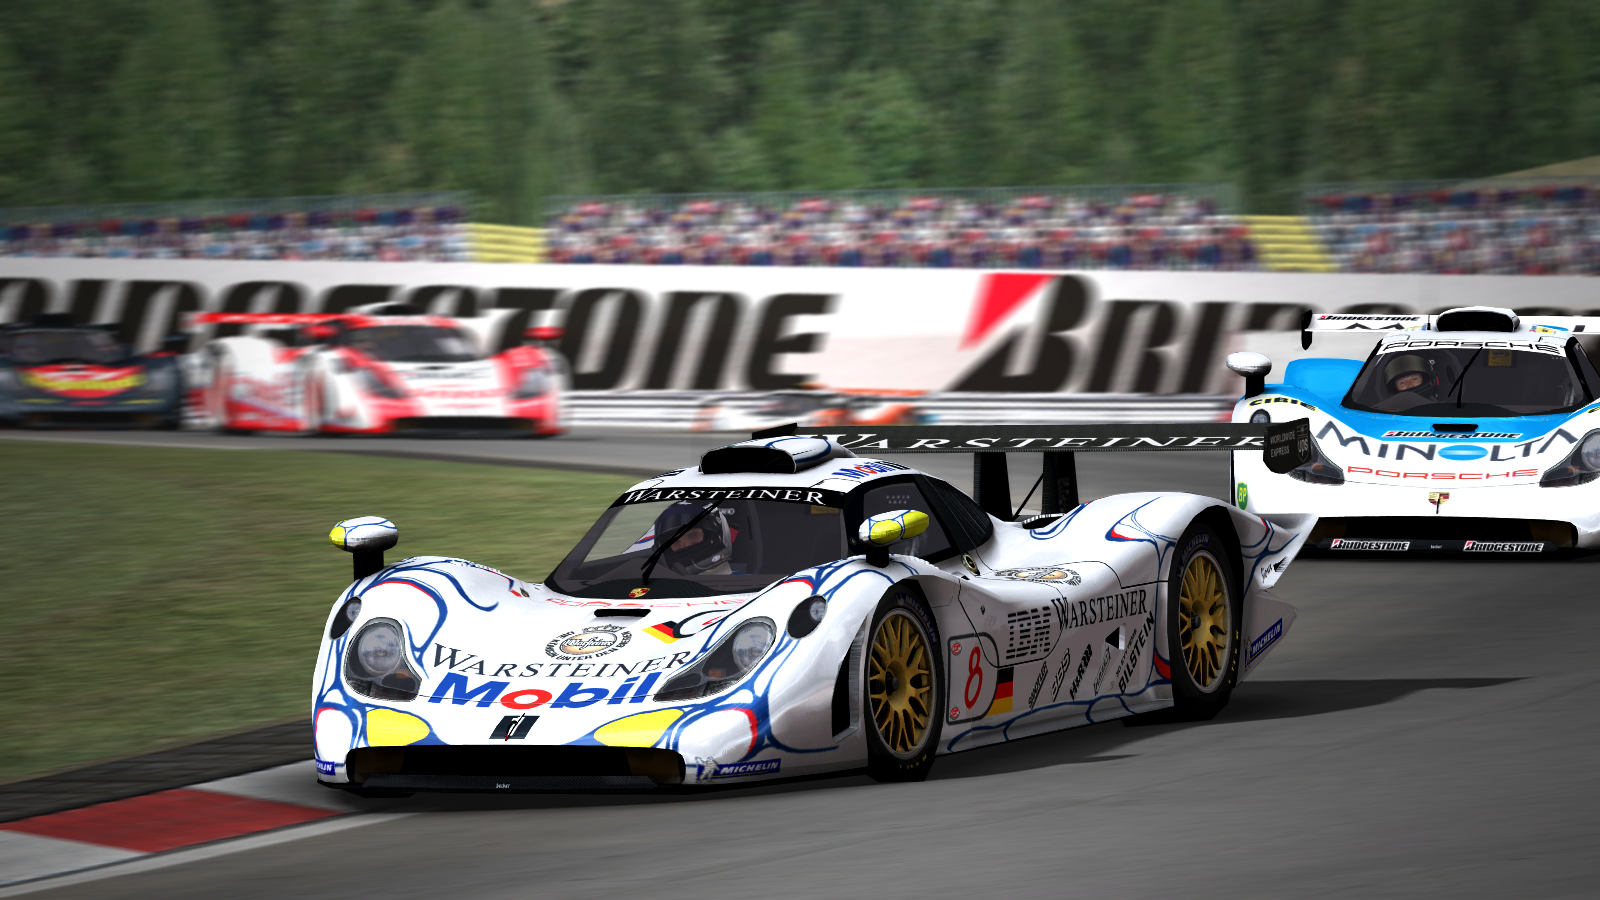 rot teufel simscreens gtr2 porsche 911 gt1 nurburgring. Black Bedroom Furniture Sets. Home Design Ideas